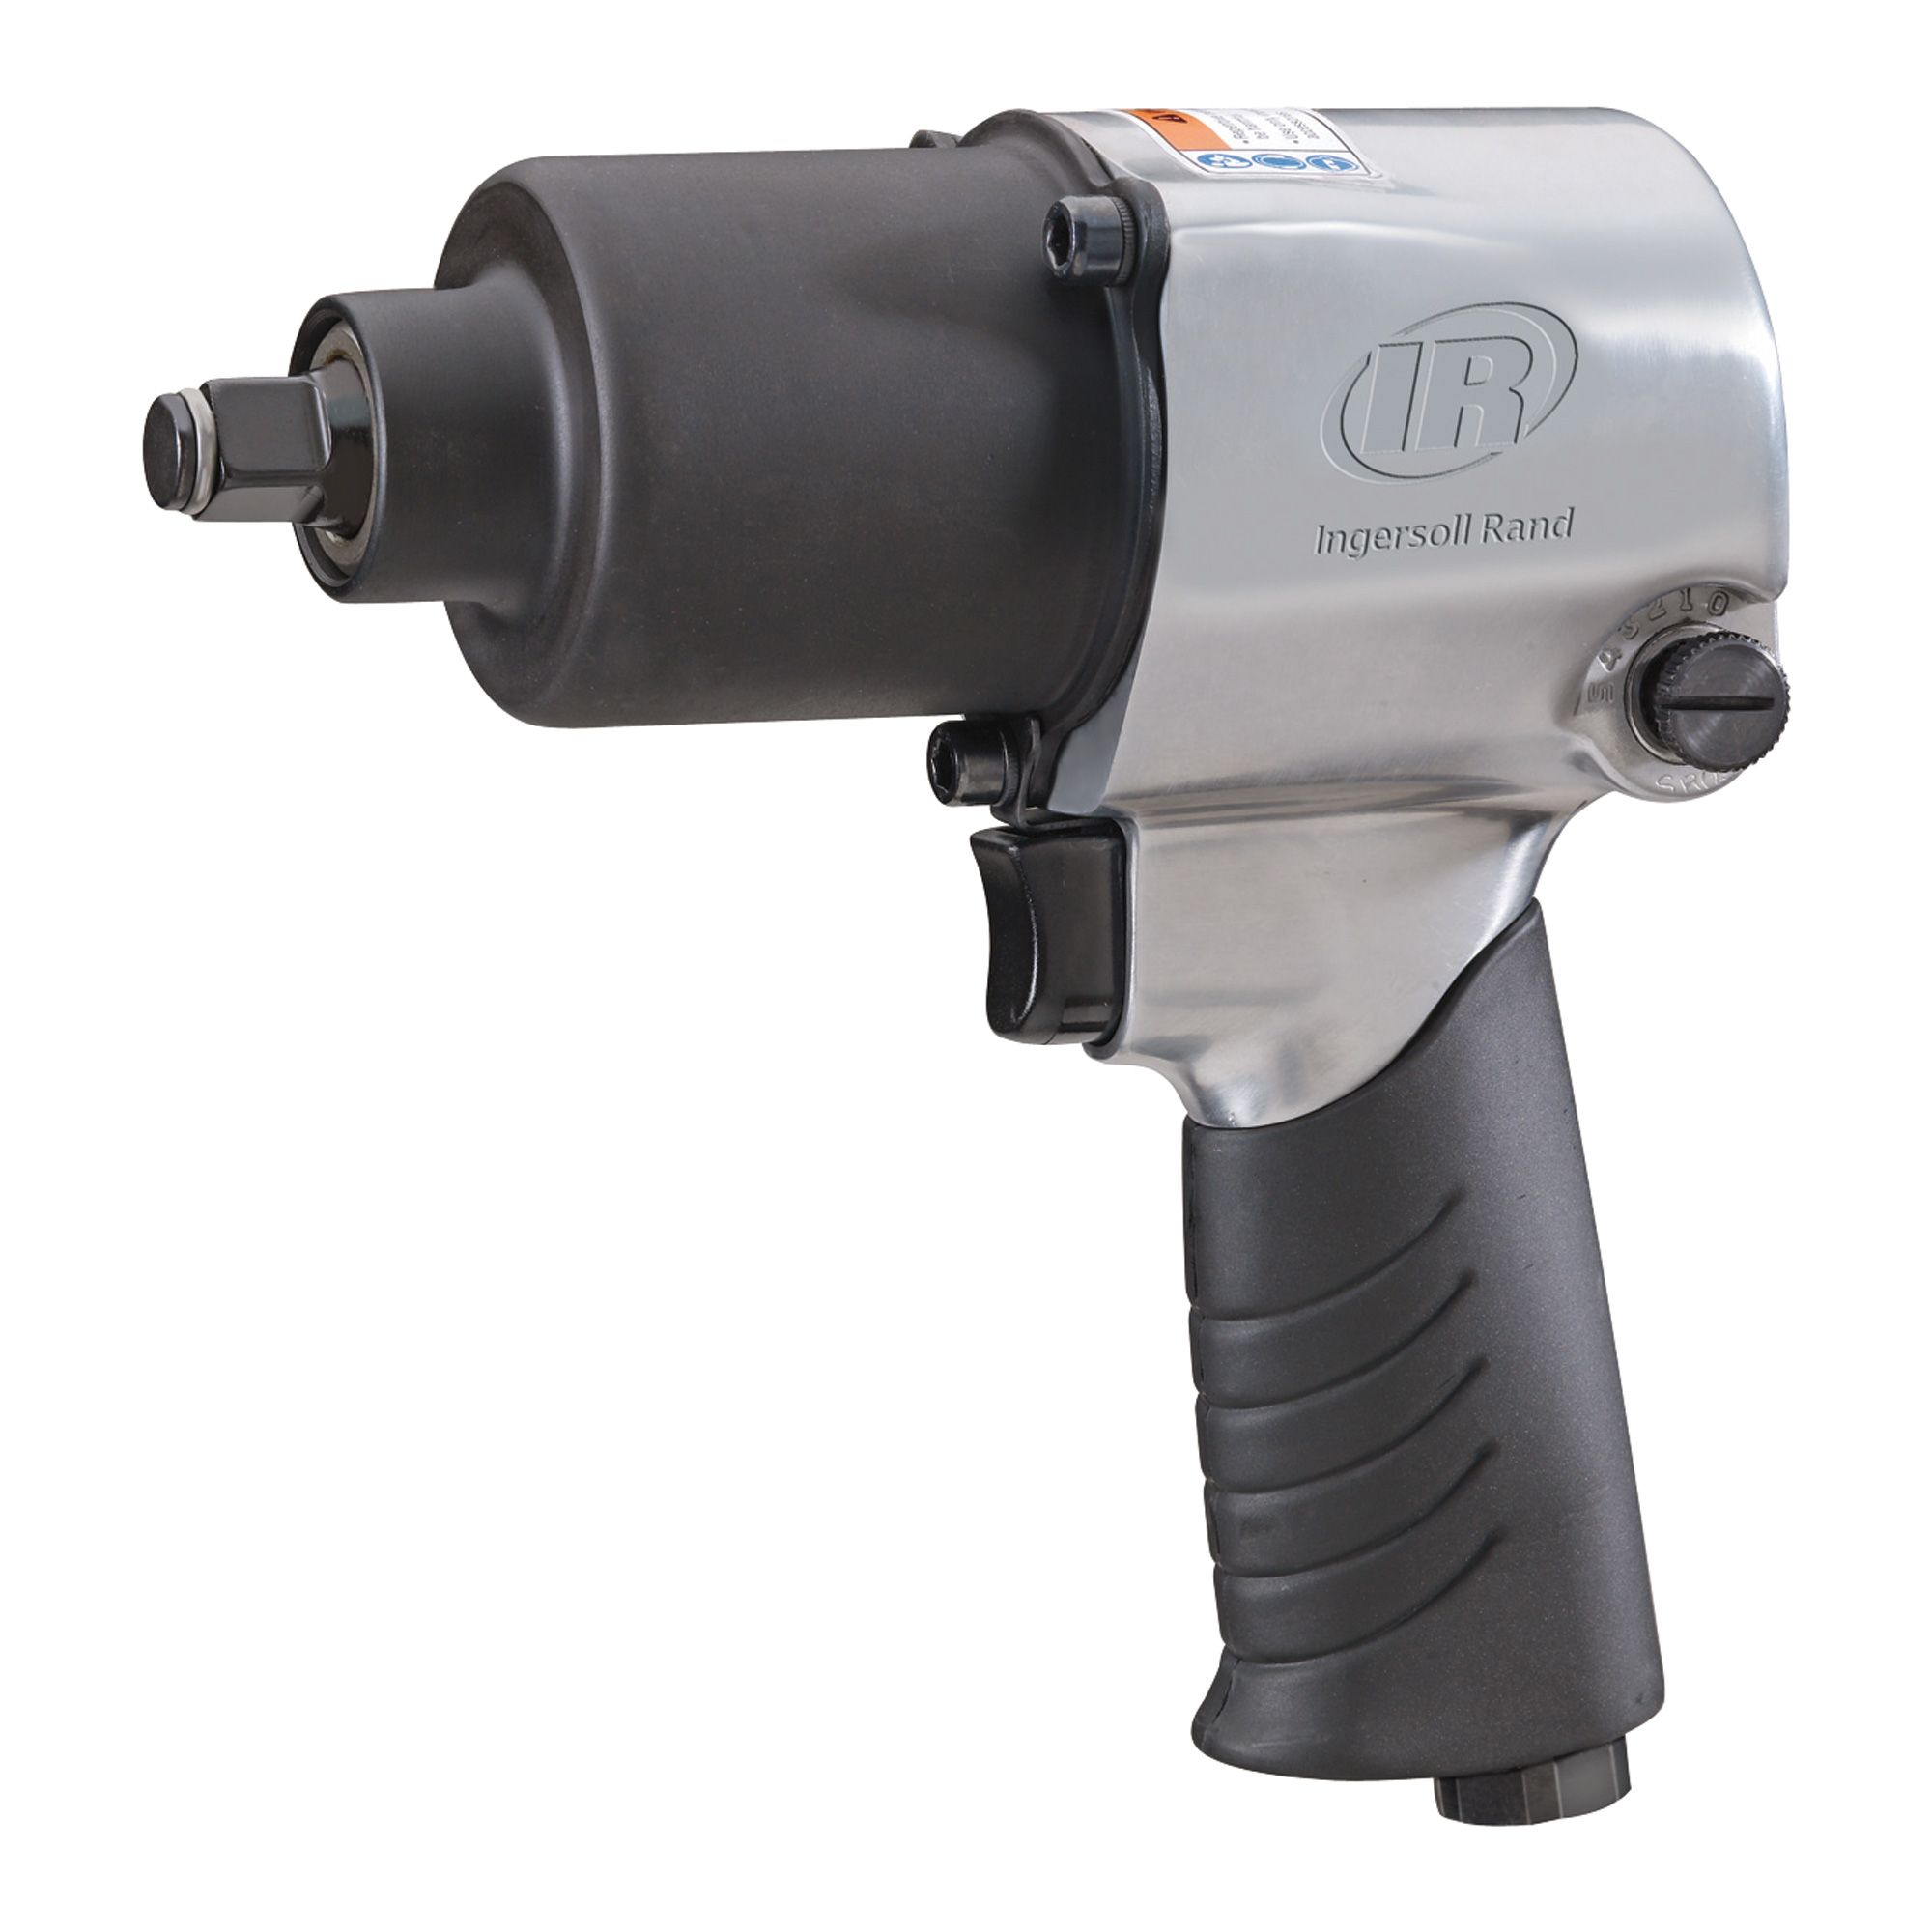 The Ingersoll Rand 231G Impact Wrench http